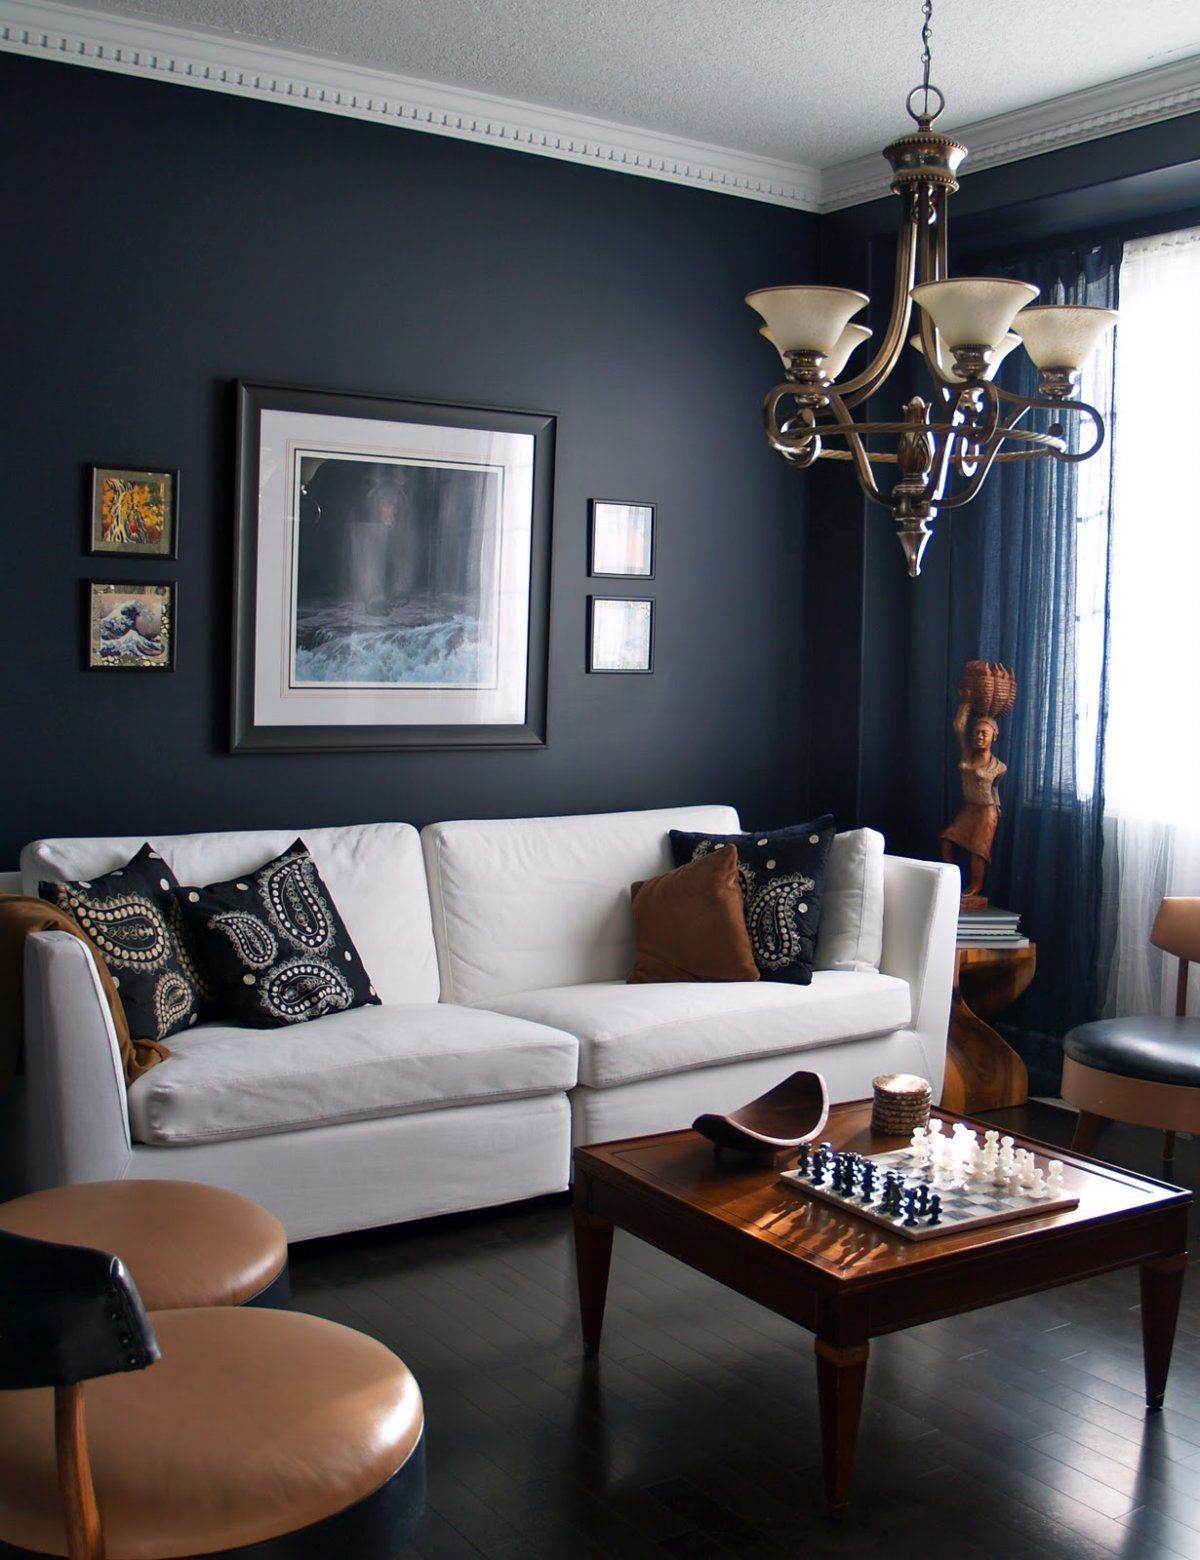 Royal blue and black bedroom - Navy Blue Walls